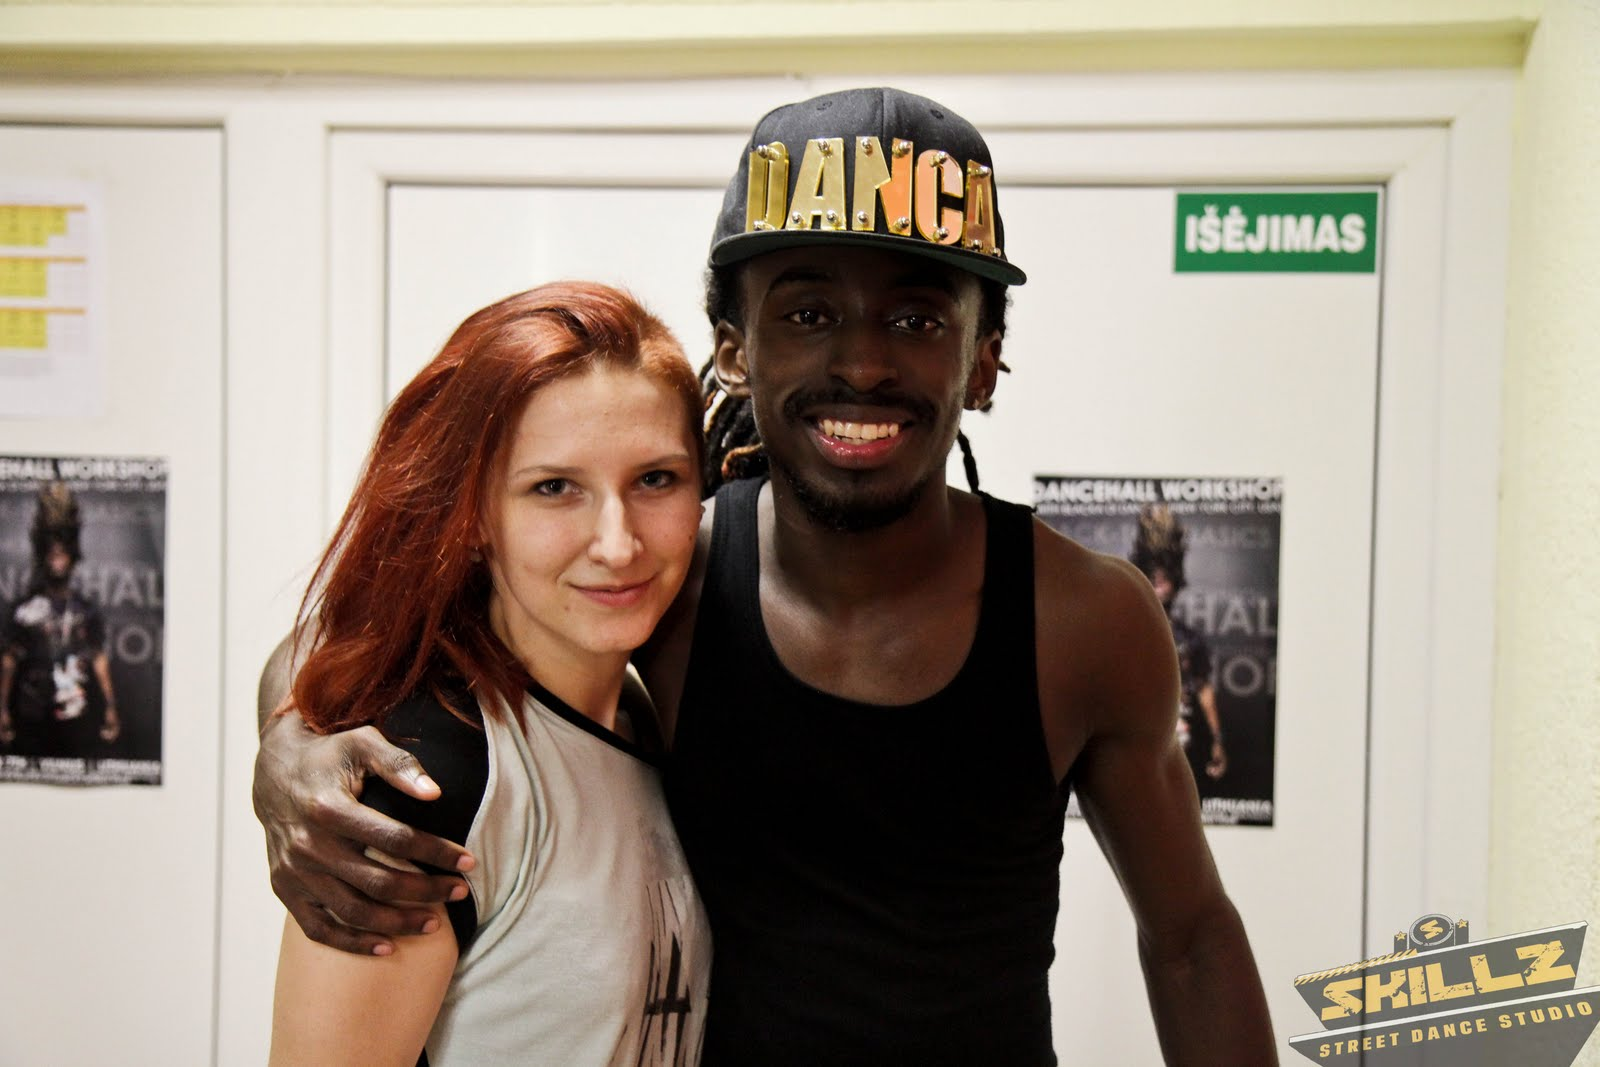 Dancehall workshop with Black Di Danca (USA, New Y - IMG_6757.jpg